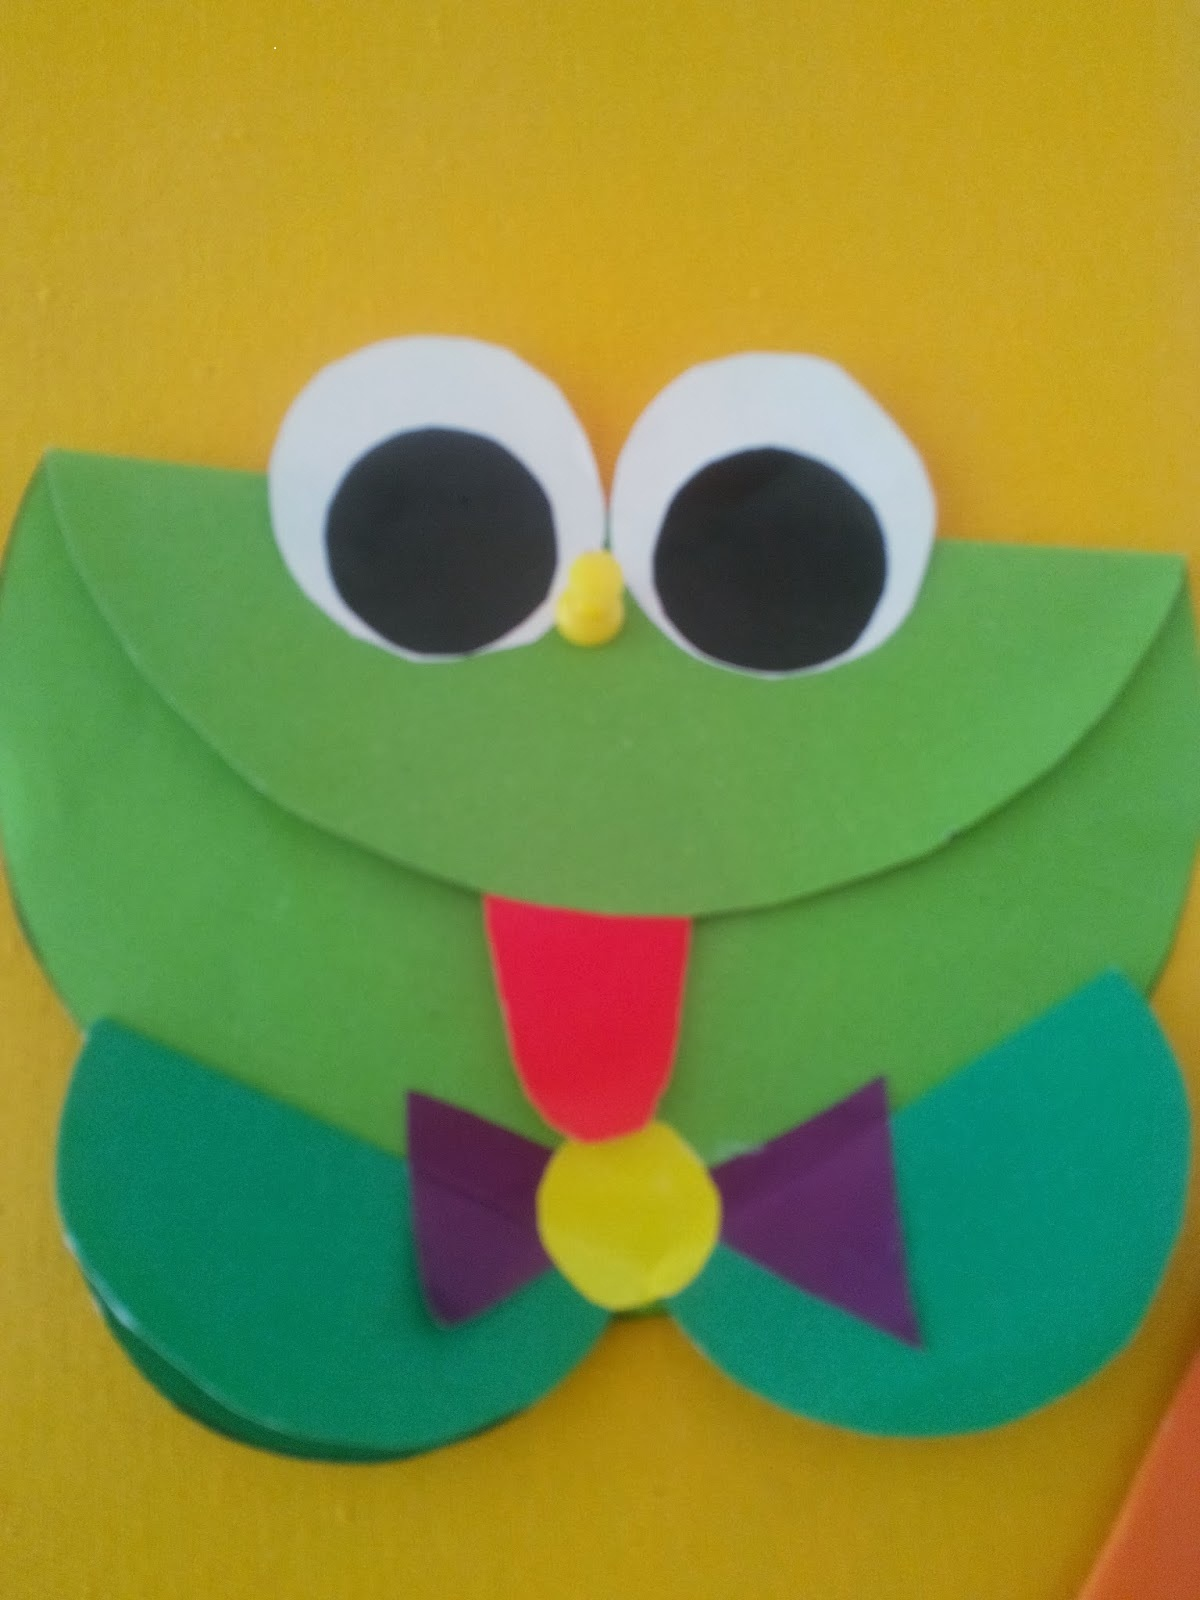 frog-activities-for-kids-preschool